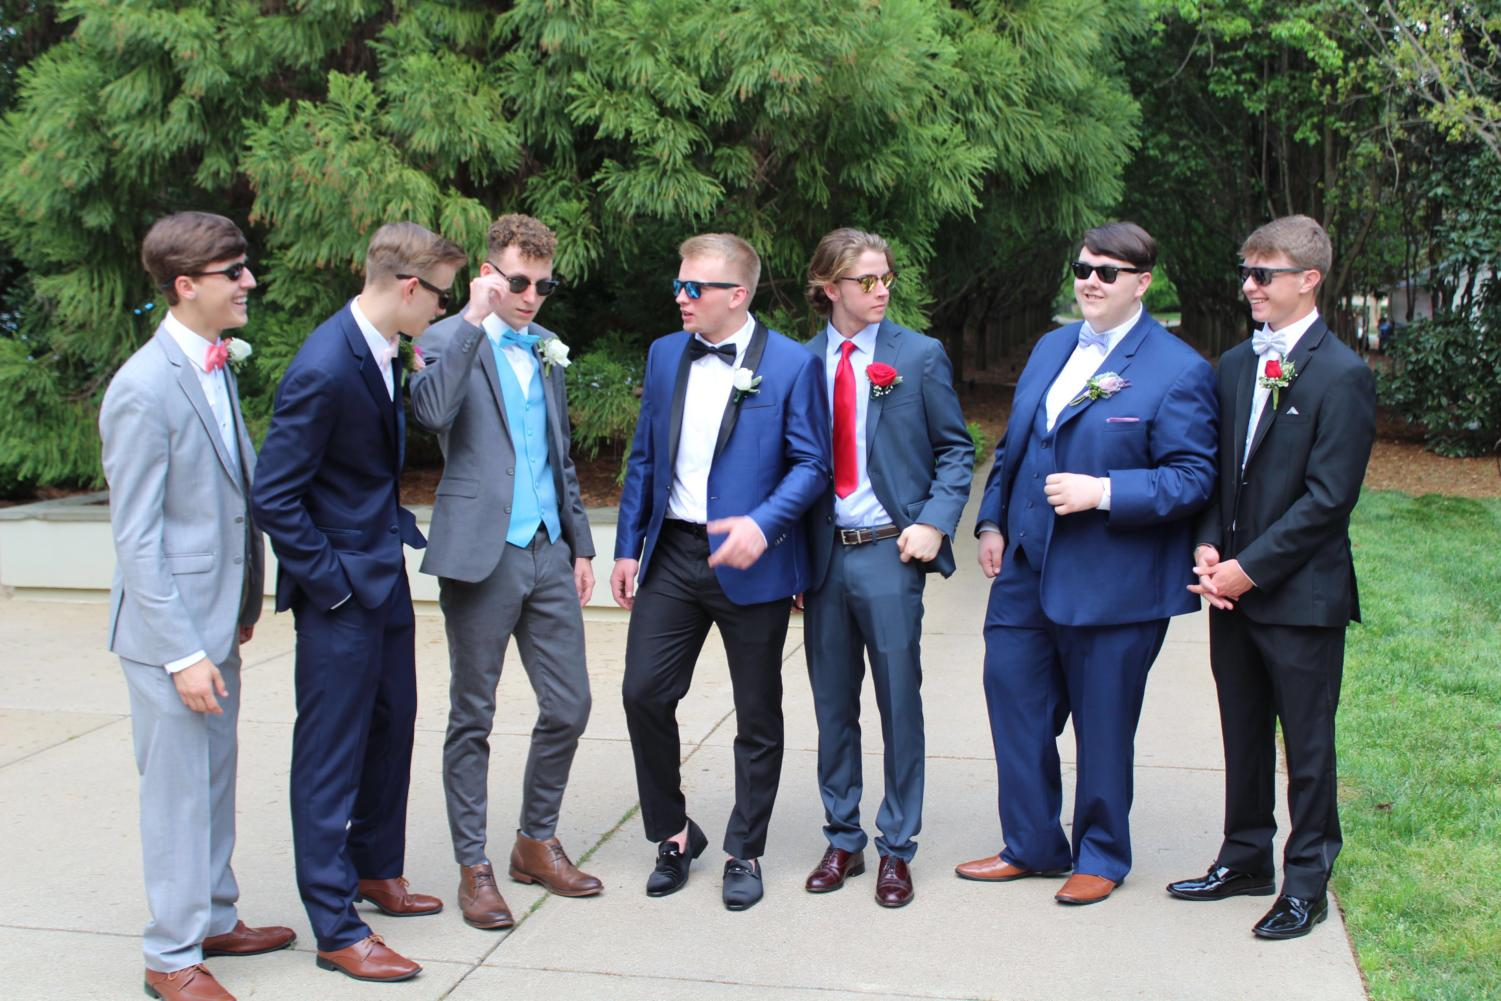 Junior Chase Cole and sophomore Ethan Holcombe with seniors Bailey Sumner, Chad Smith, Thomas Grigg, Eason Atkins, Jackson Hall